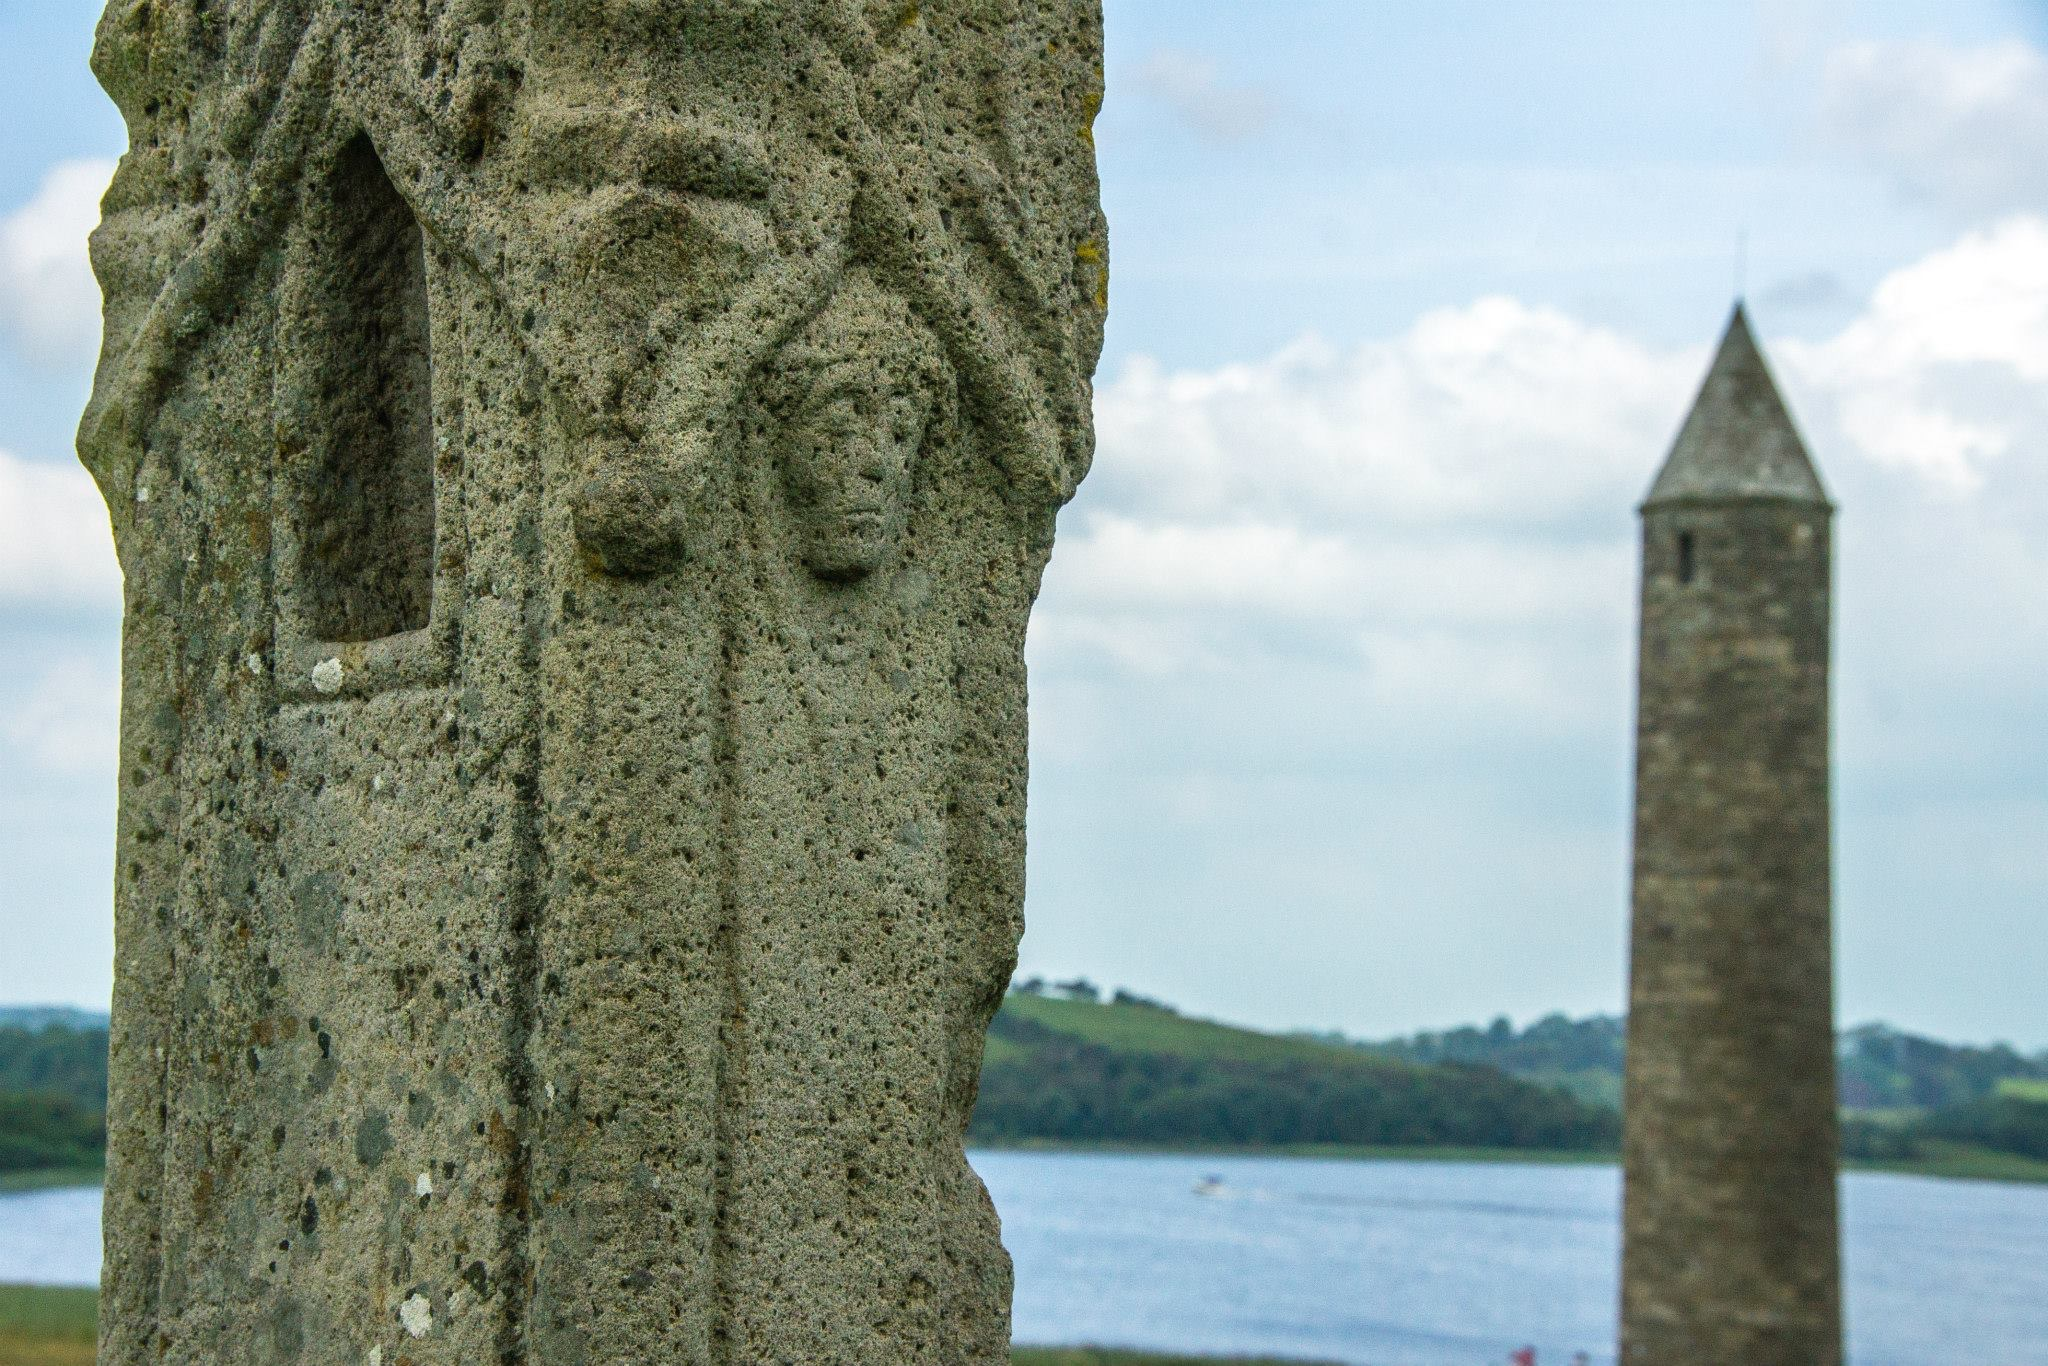 Devenish Island cross closeup and round tower.